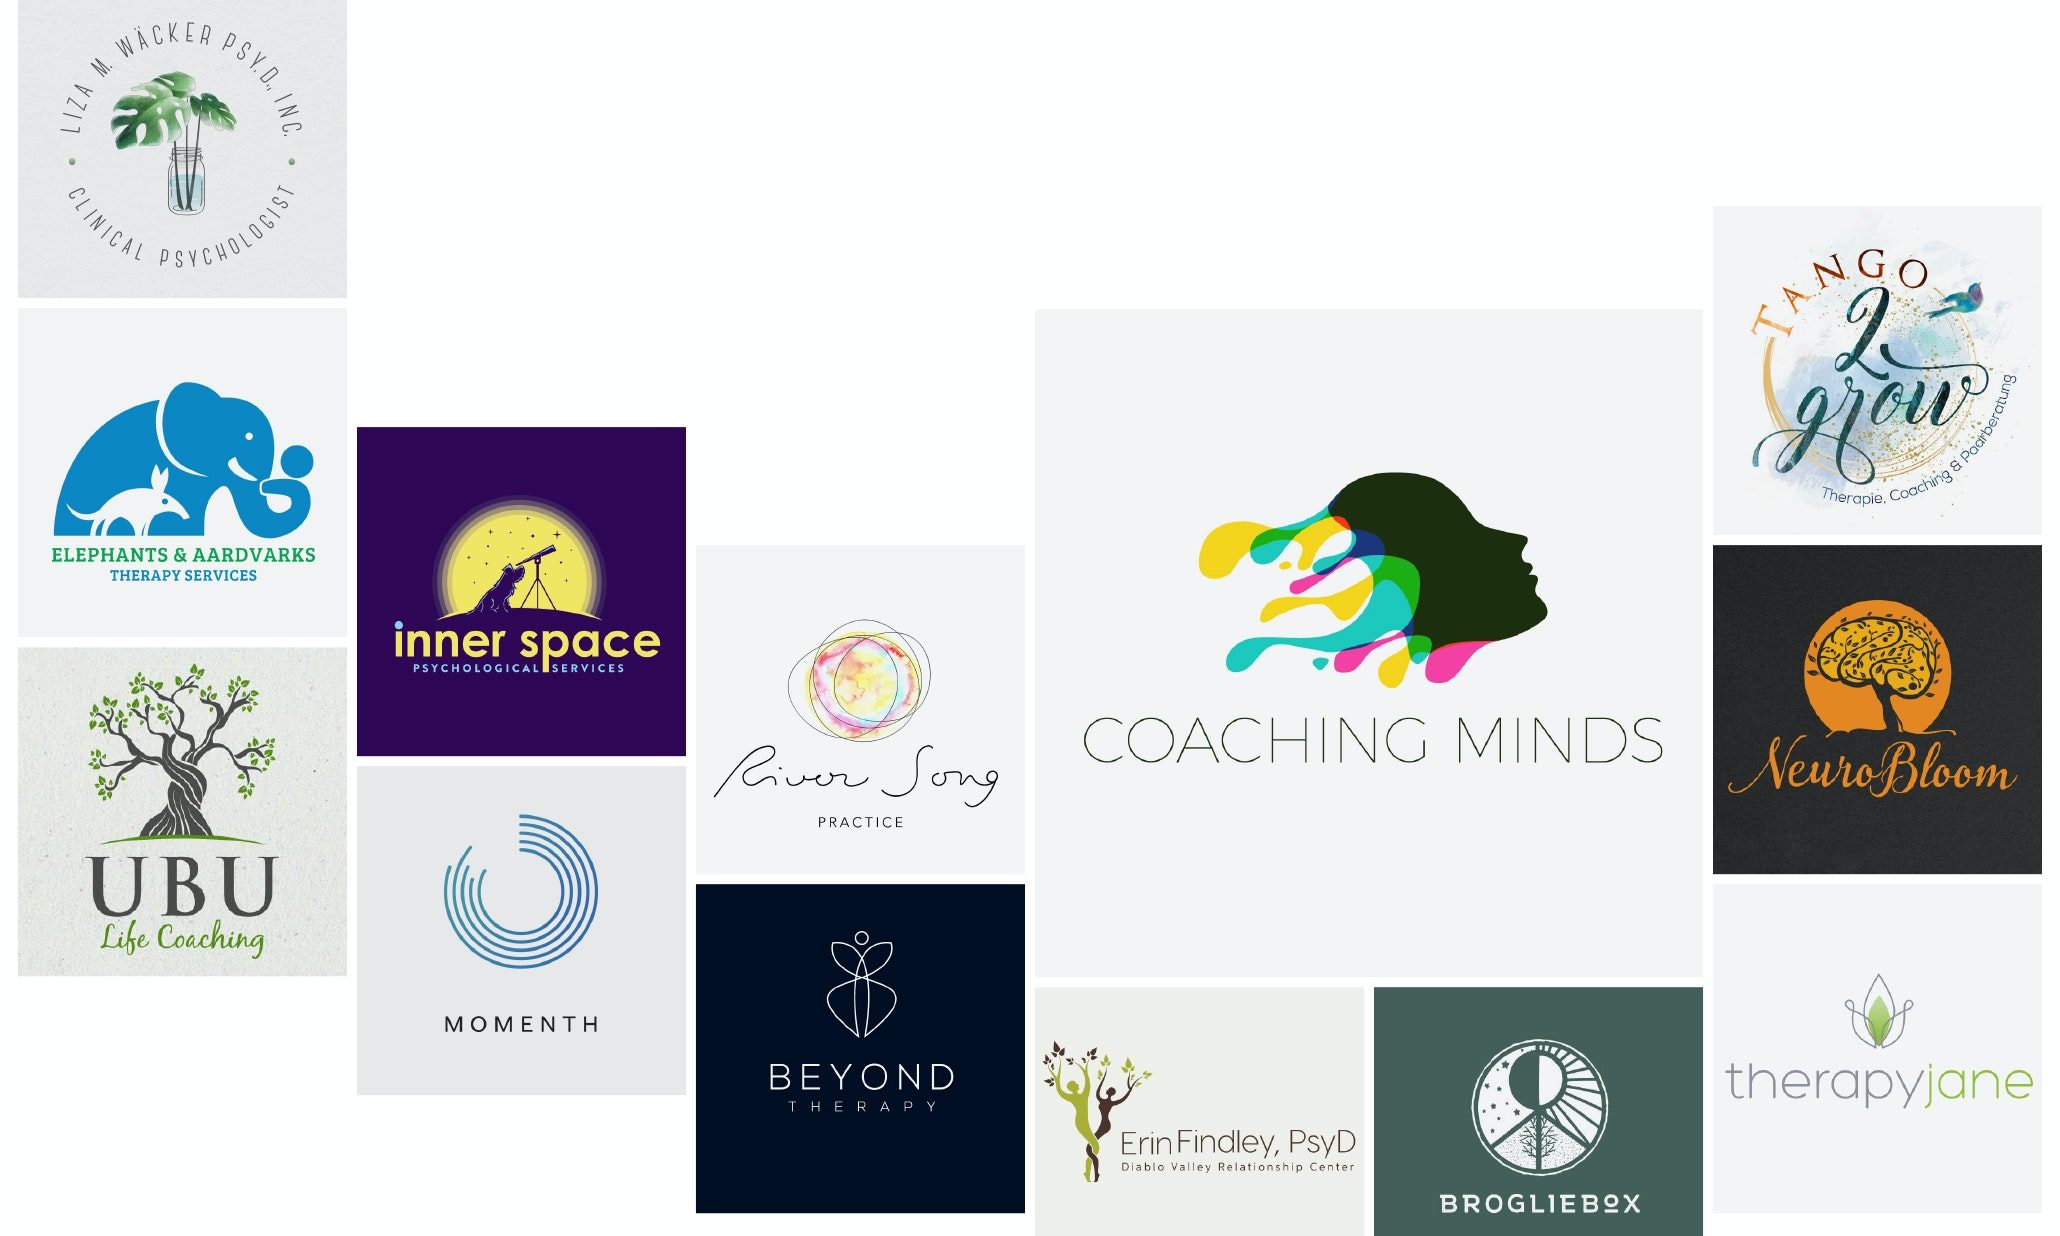 37 psychologist, therapist and counselor logos to guide you in the right direction